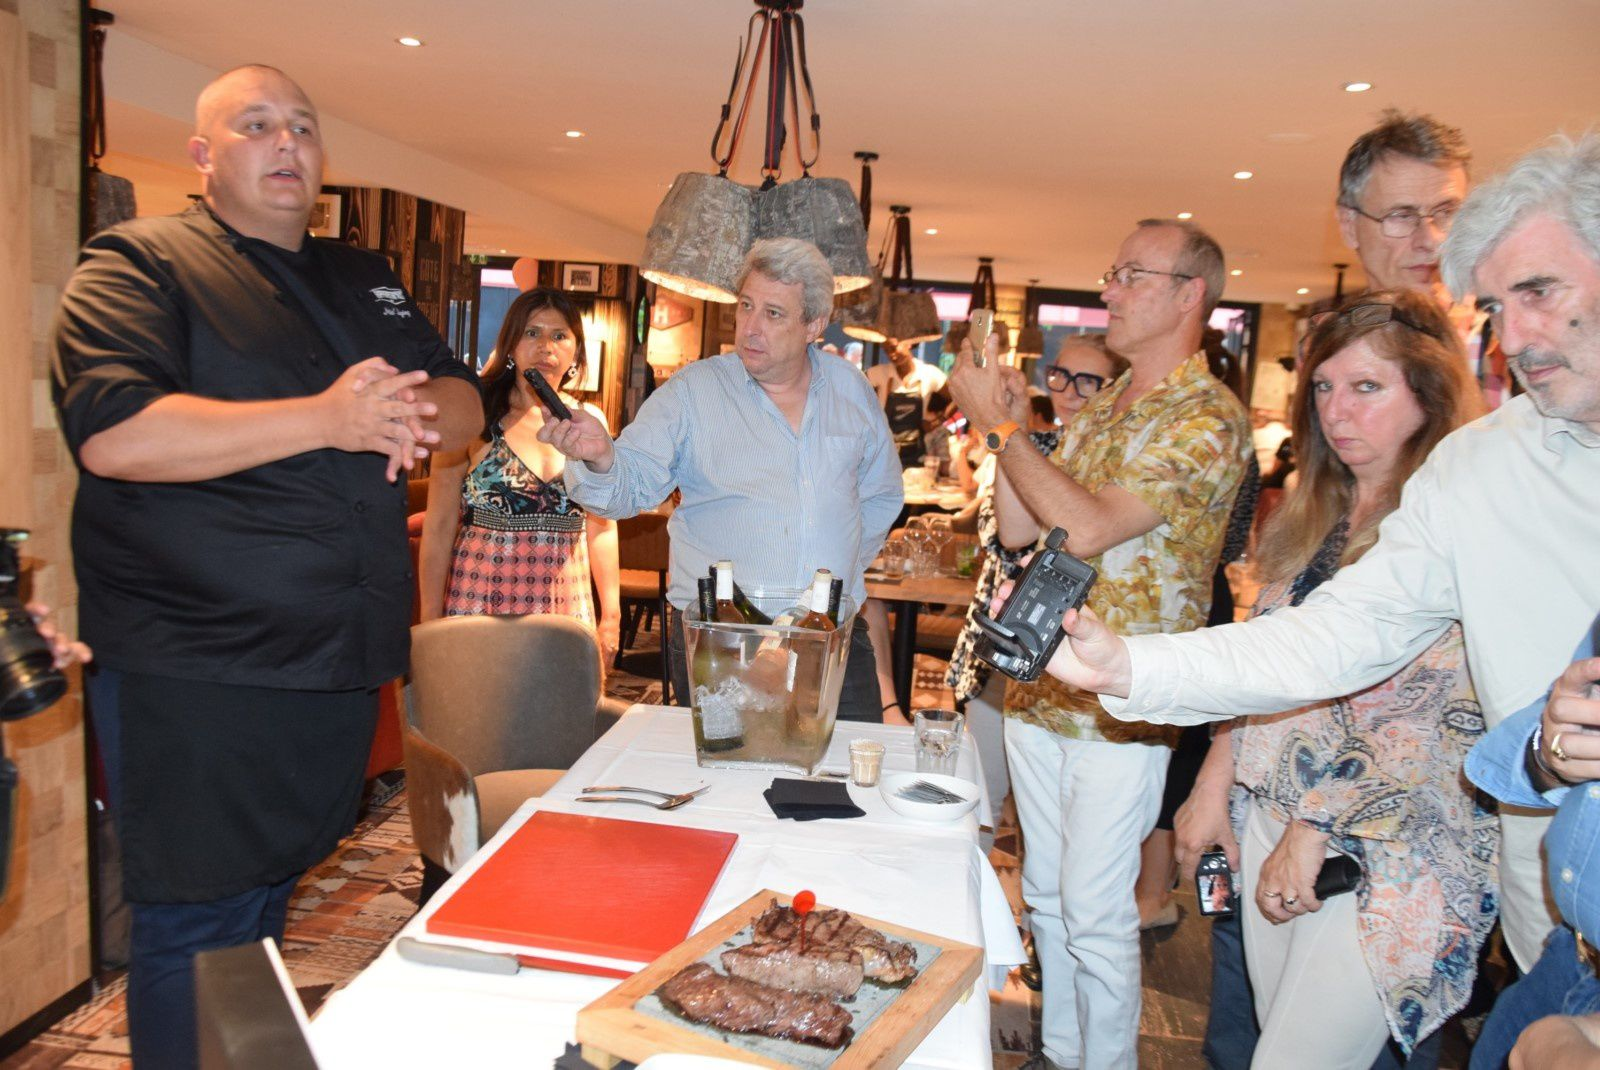 HIPPOPOTAMUS NICE MASSENA : UNA RIAPERTURA IN STILE STEAK HOUSE ALLA FRANCESE